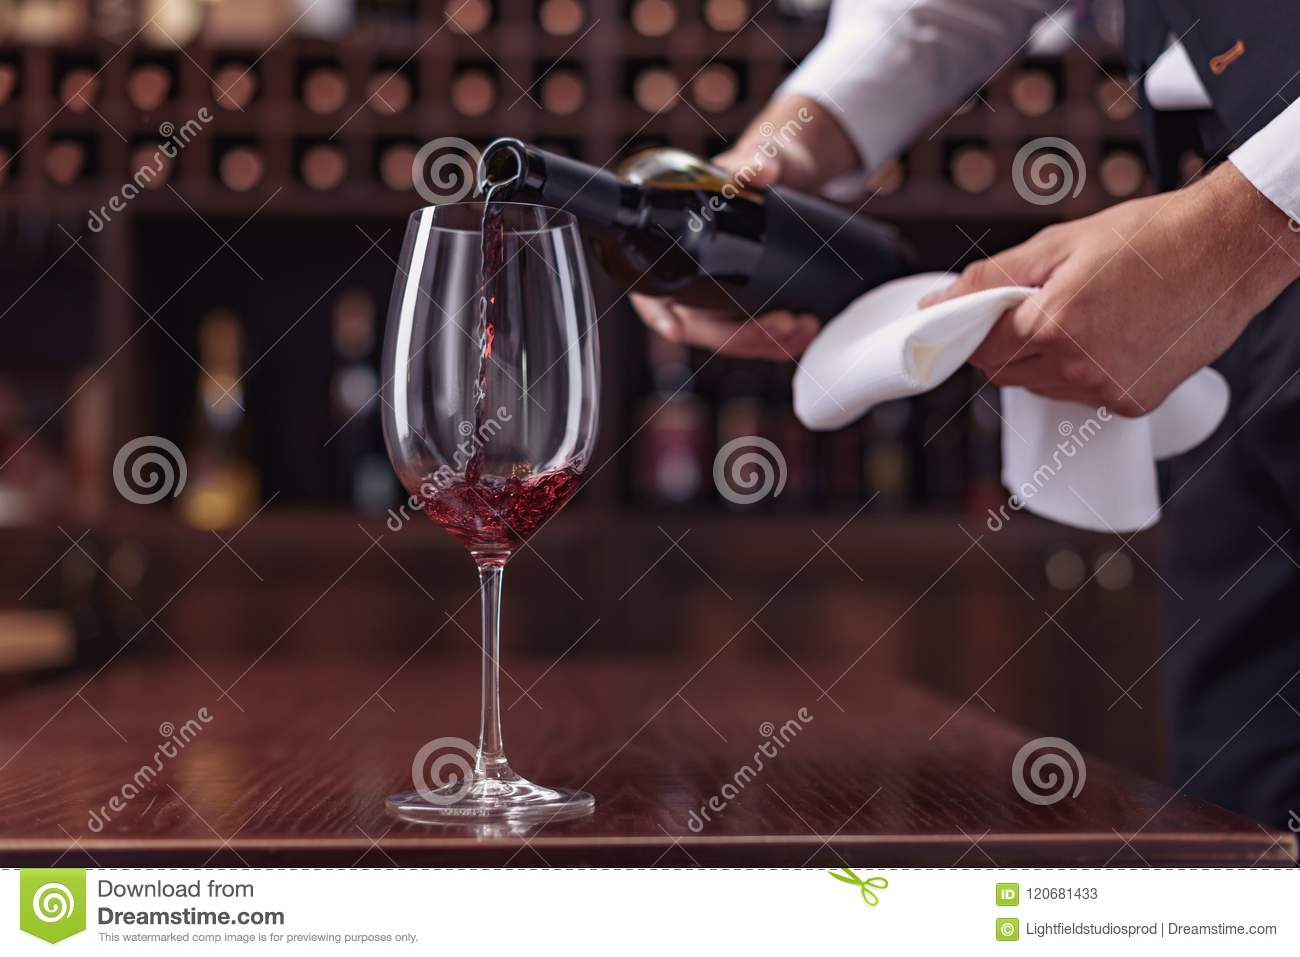 Cropped view sommelier pouring red wine from bottle into glass at table